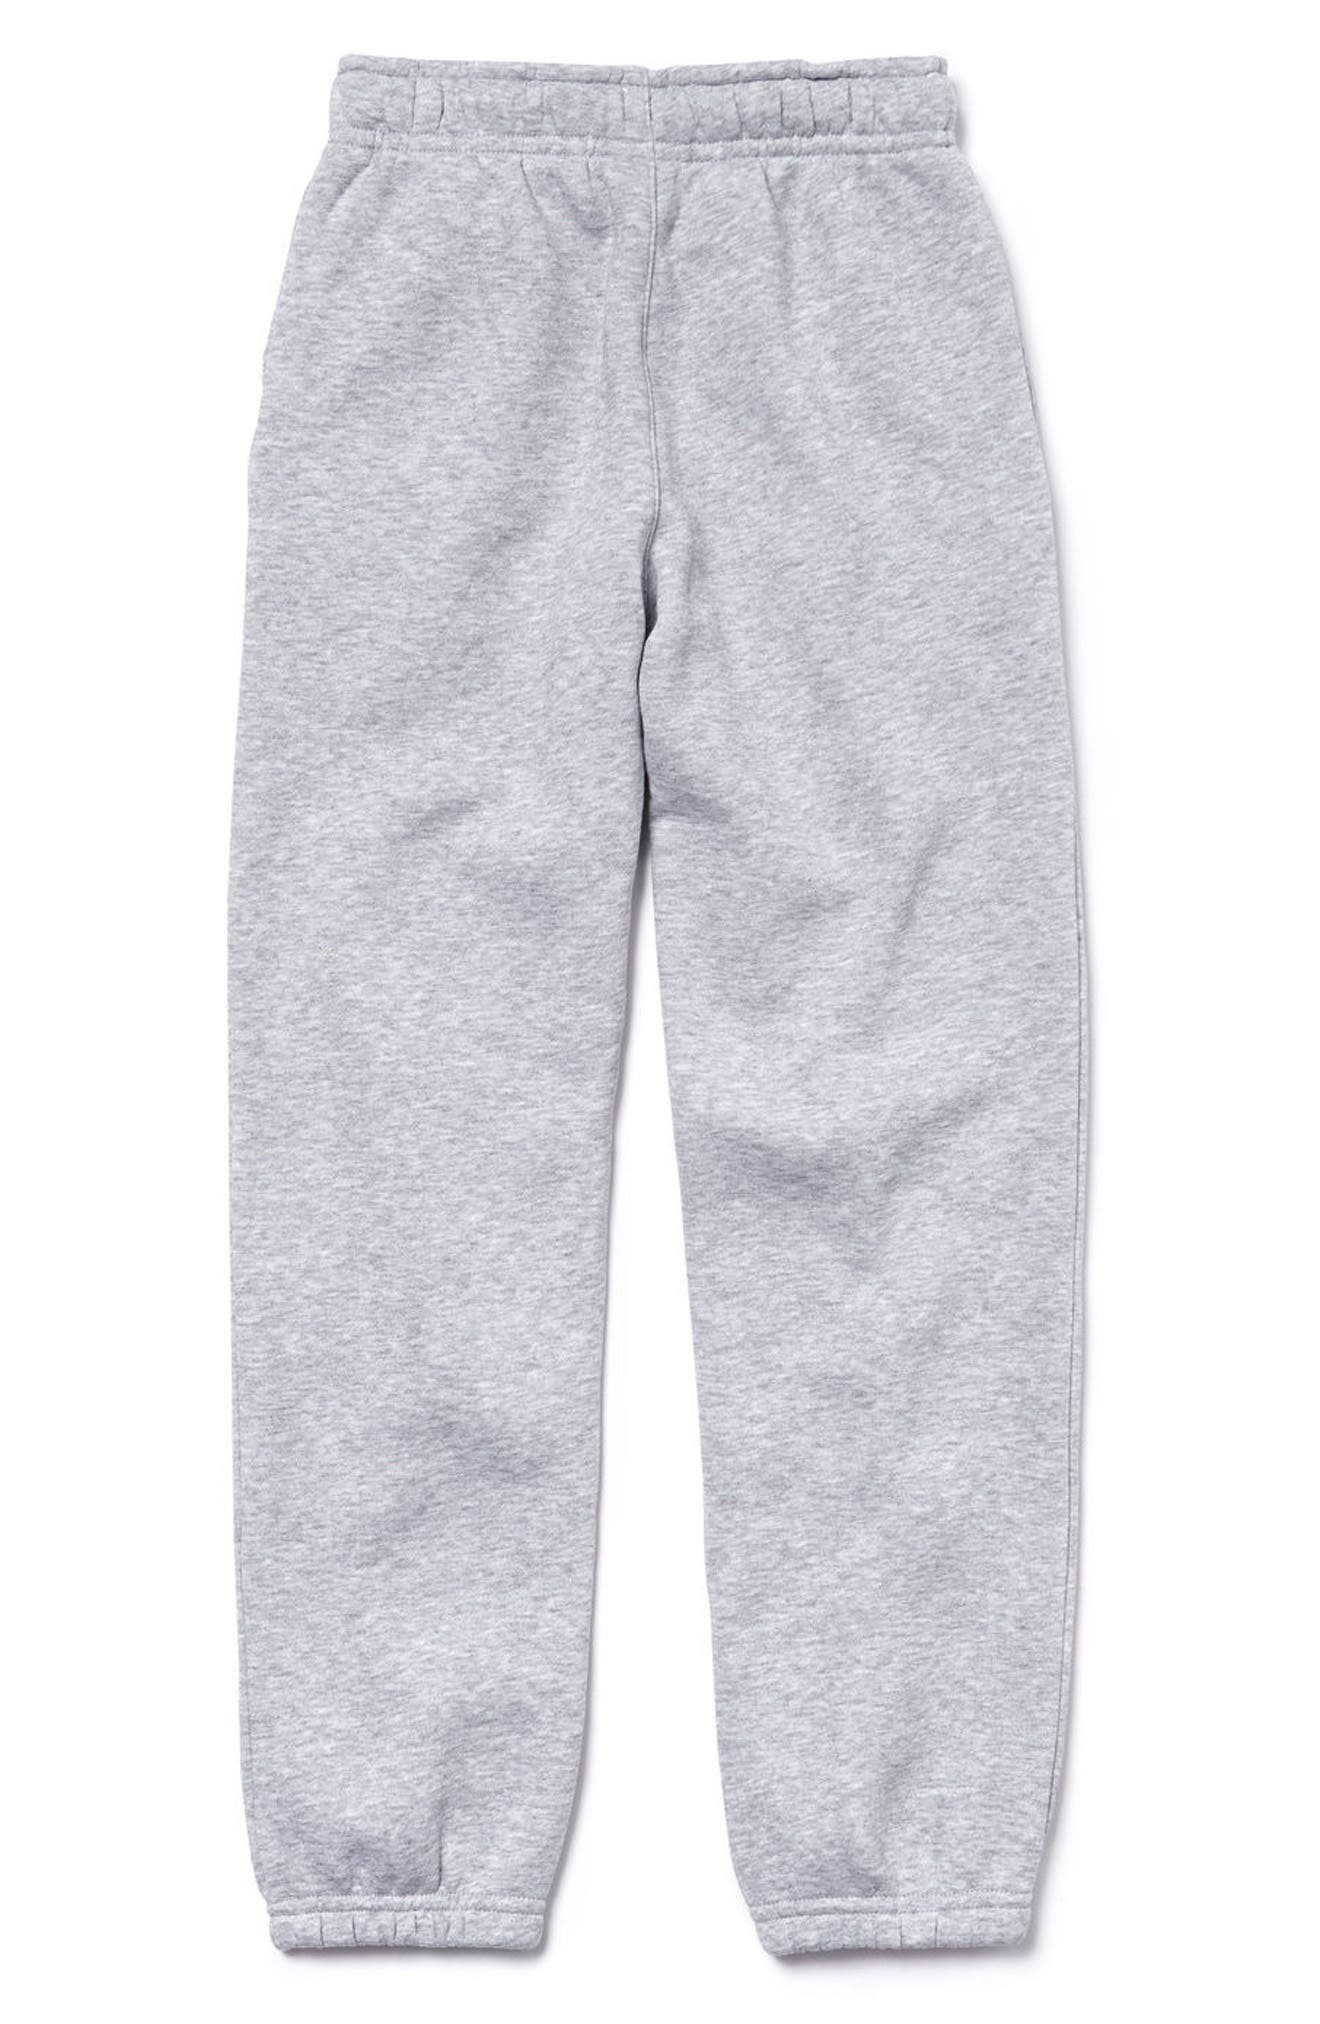 Sport Sweatpants,                             Alternate thumbnail 2, color,                             020